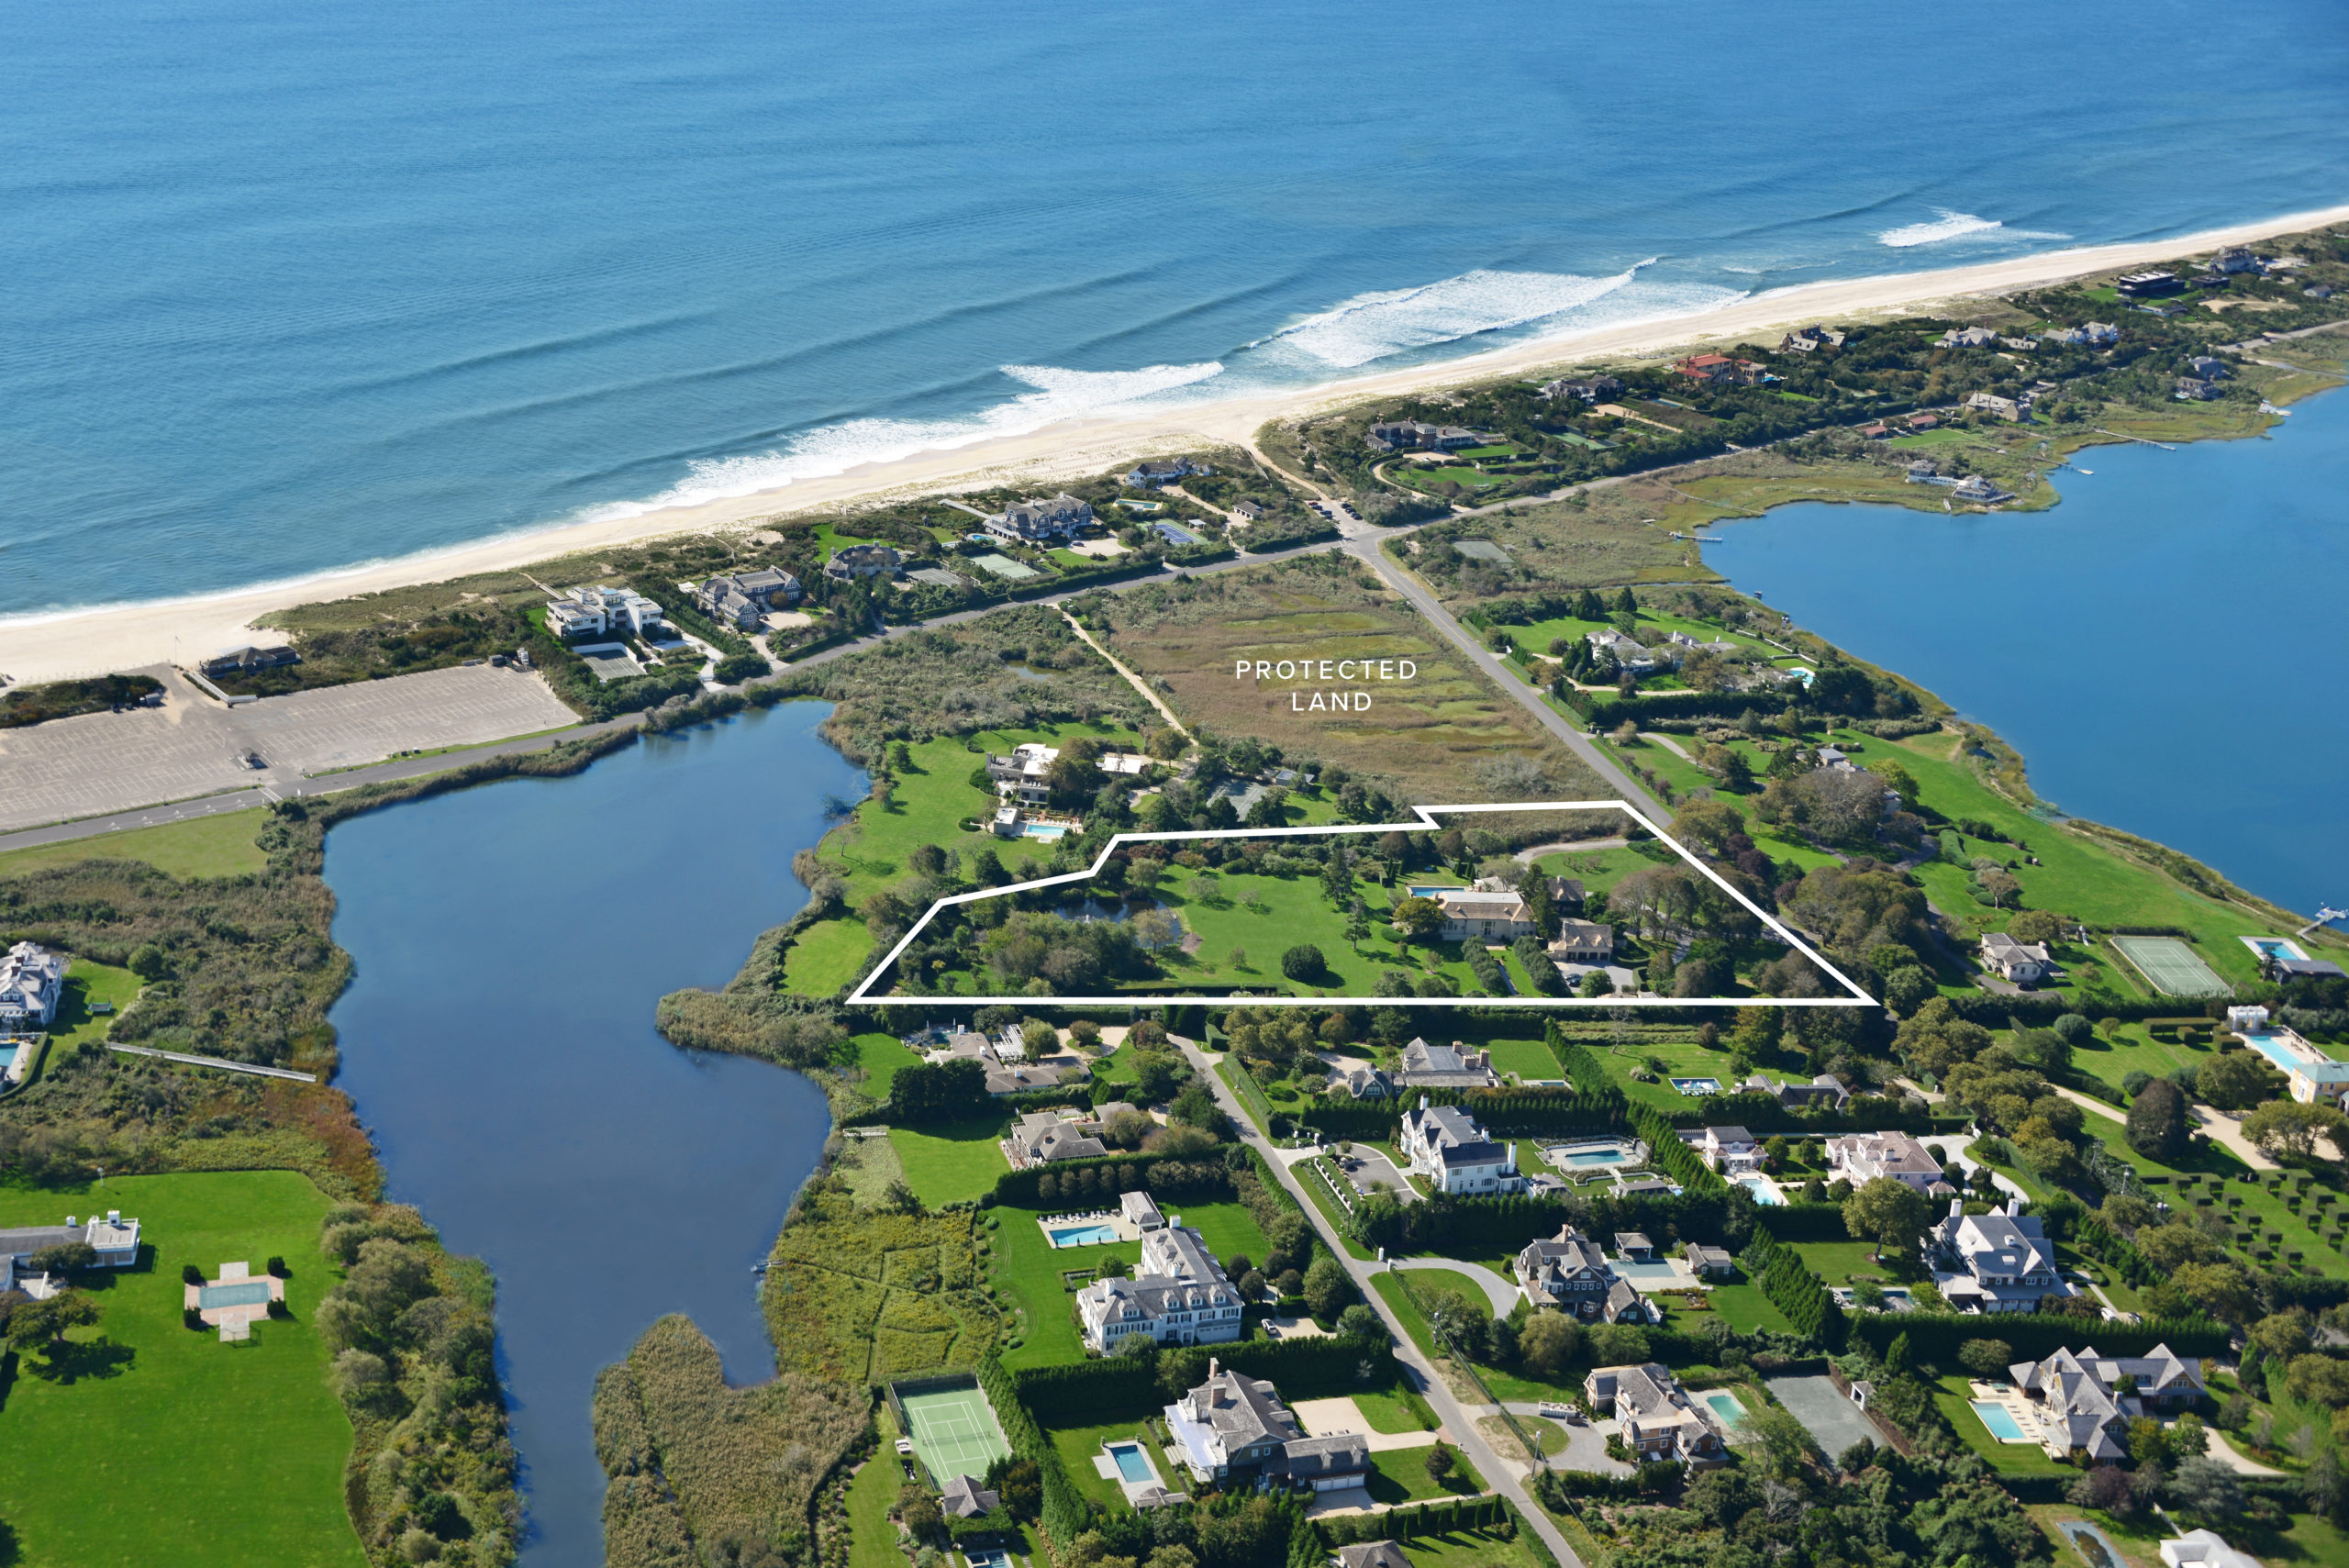 660 Halsey Neck Lane, Southampton, tied for the No. 10 Hamptons home sale of 2019.